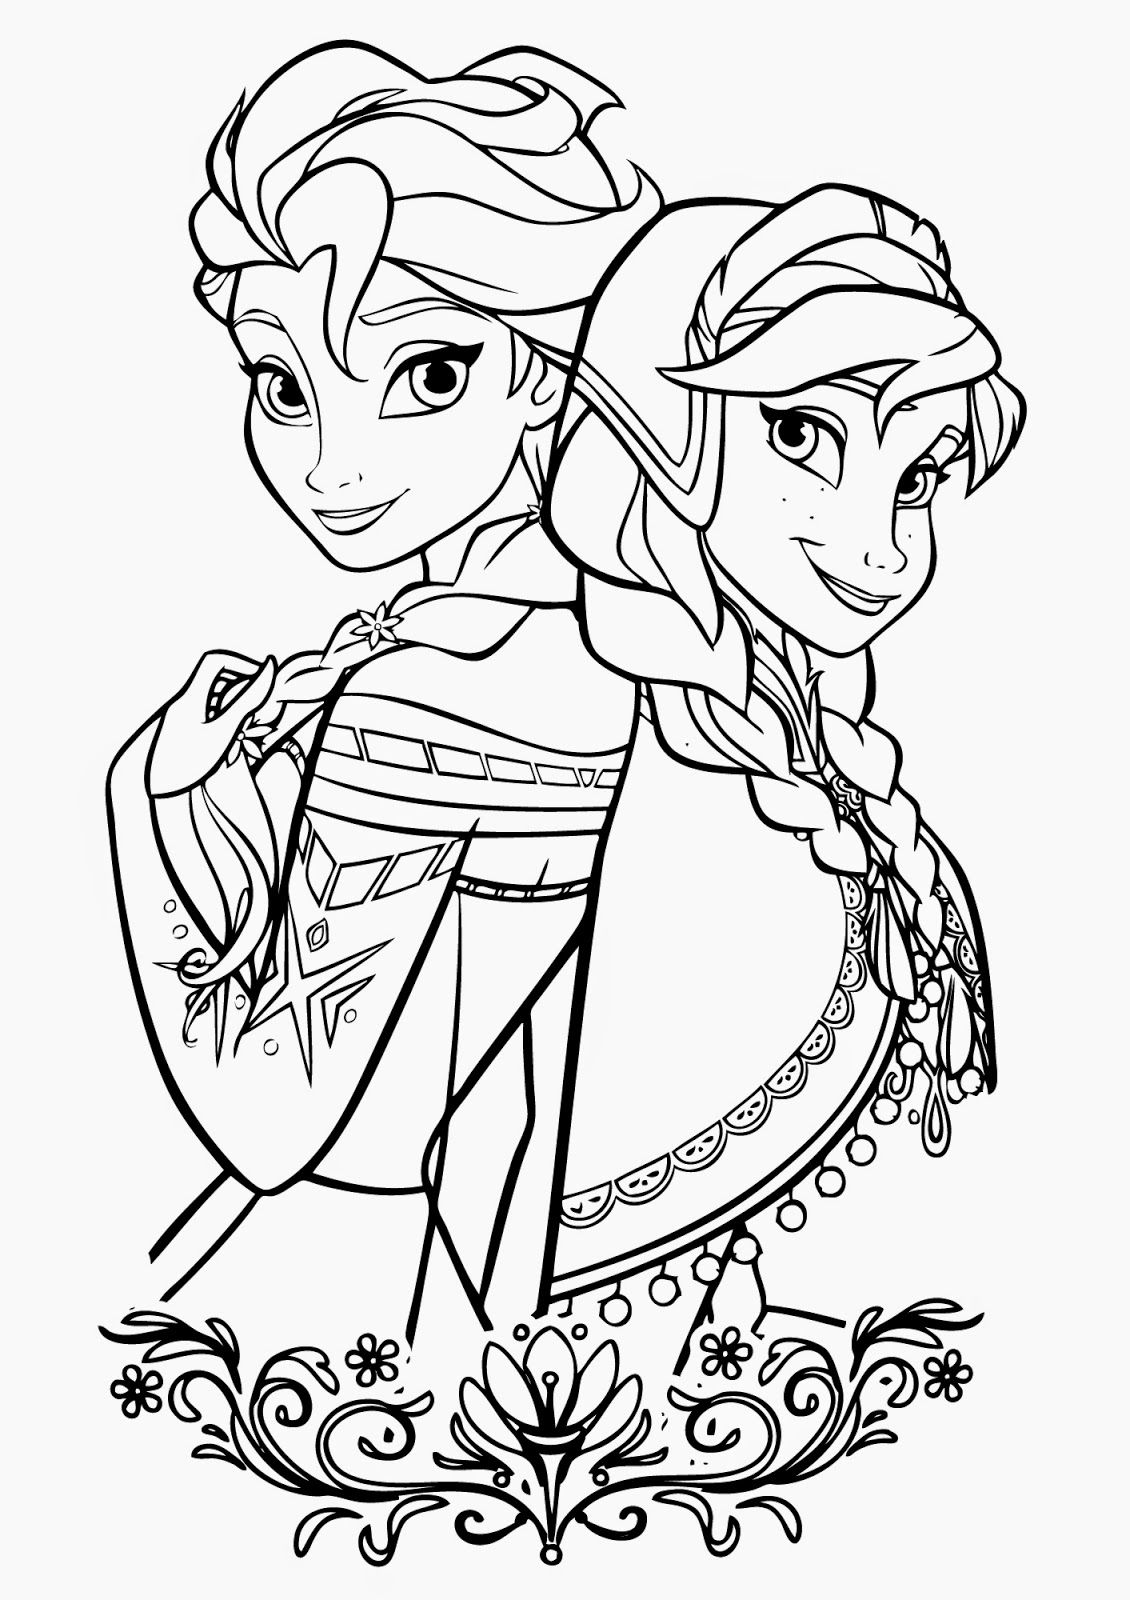 frozen-coloring-sheets-all-characters-famous-characters-walt-disney ...